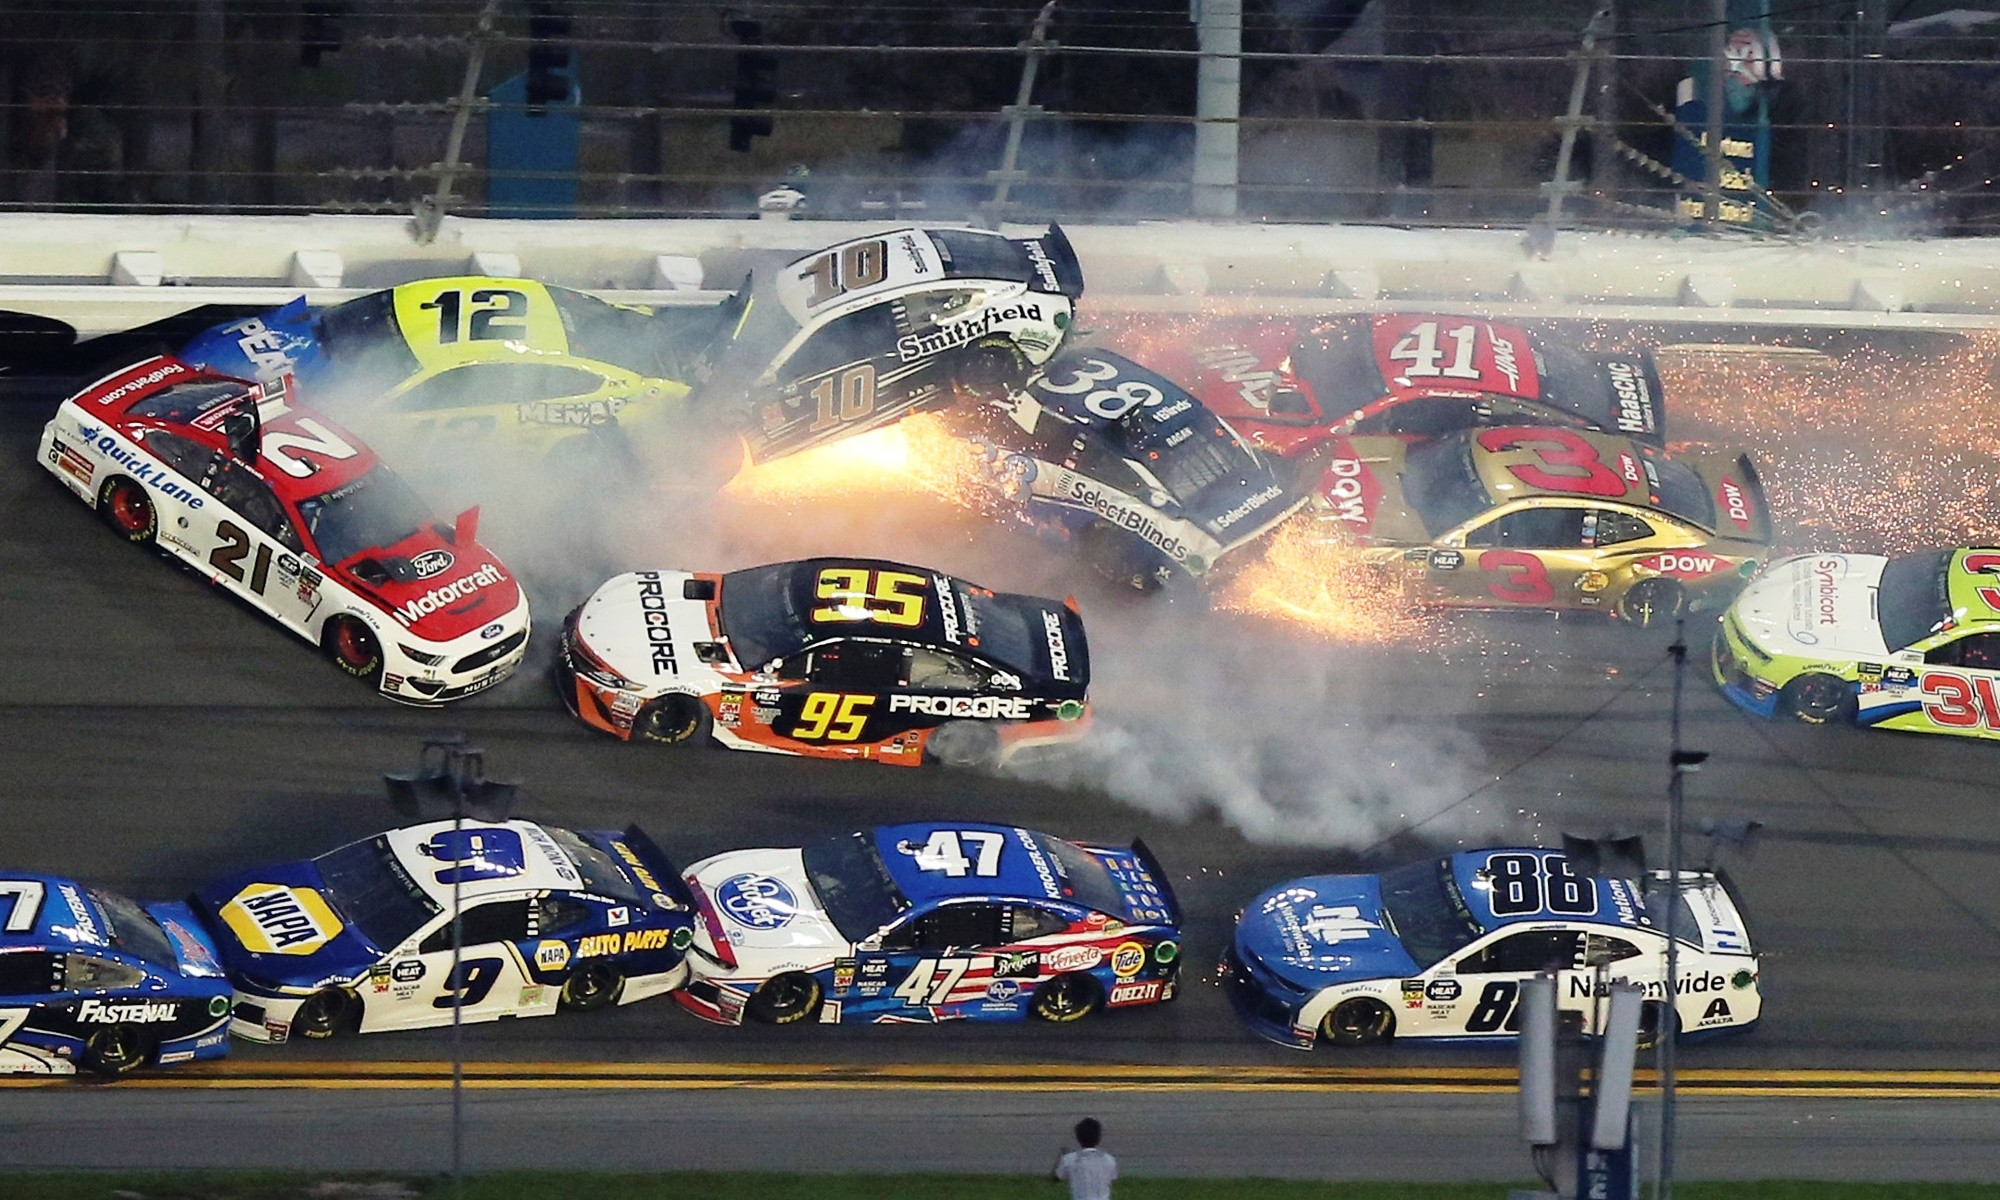 Daytona 500 Crashes